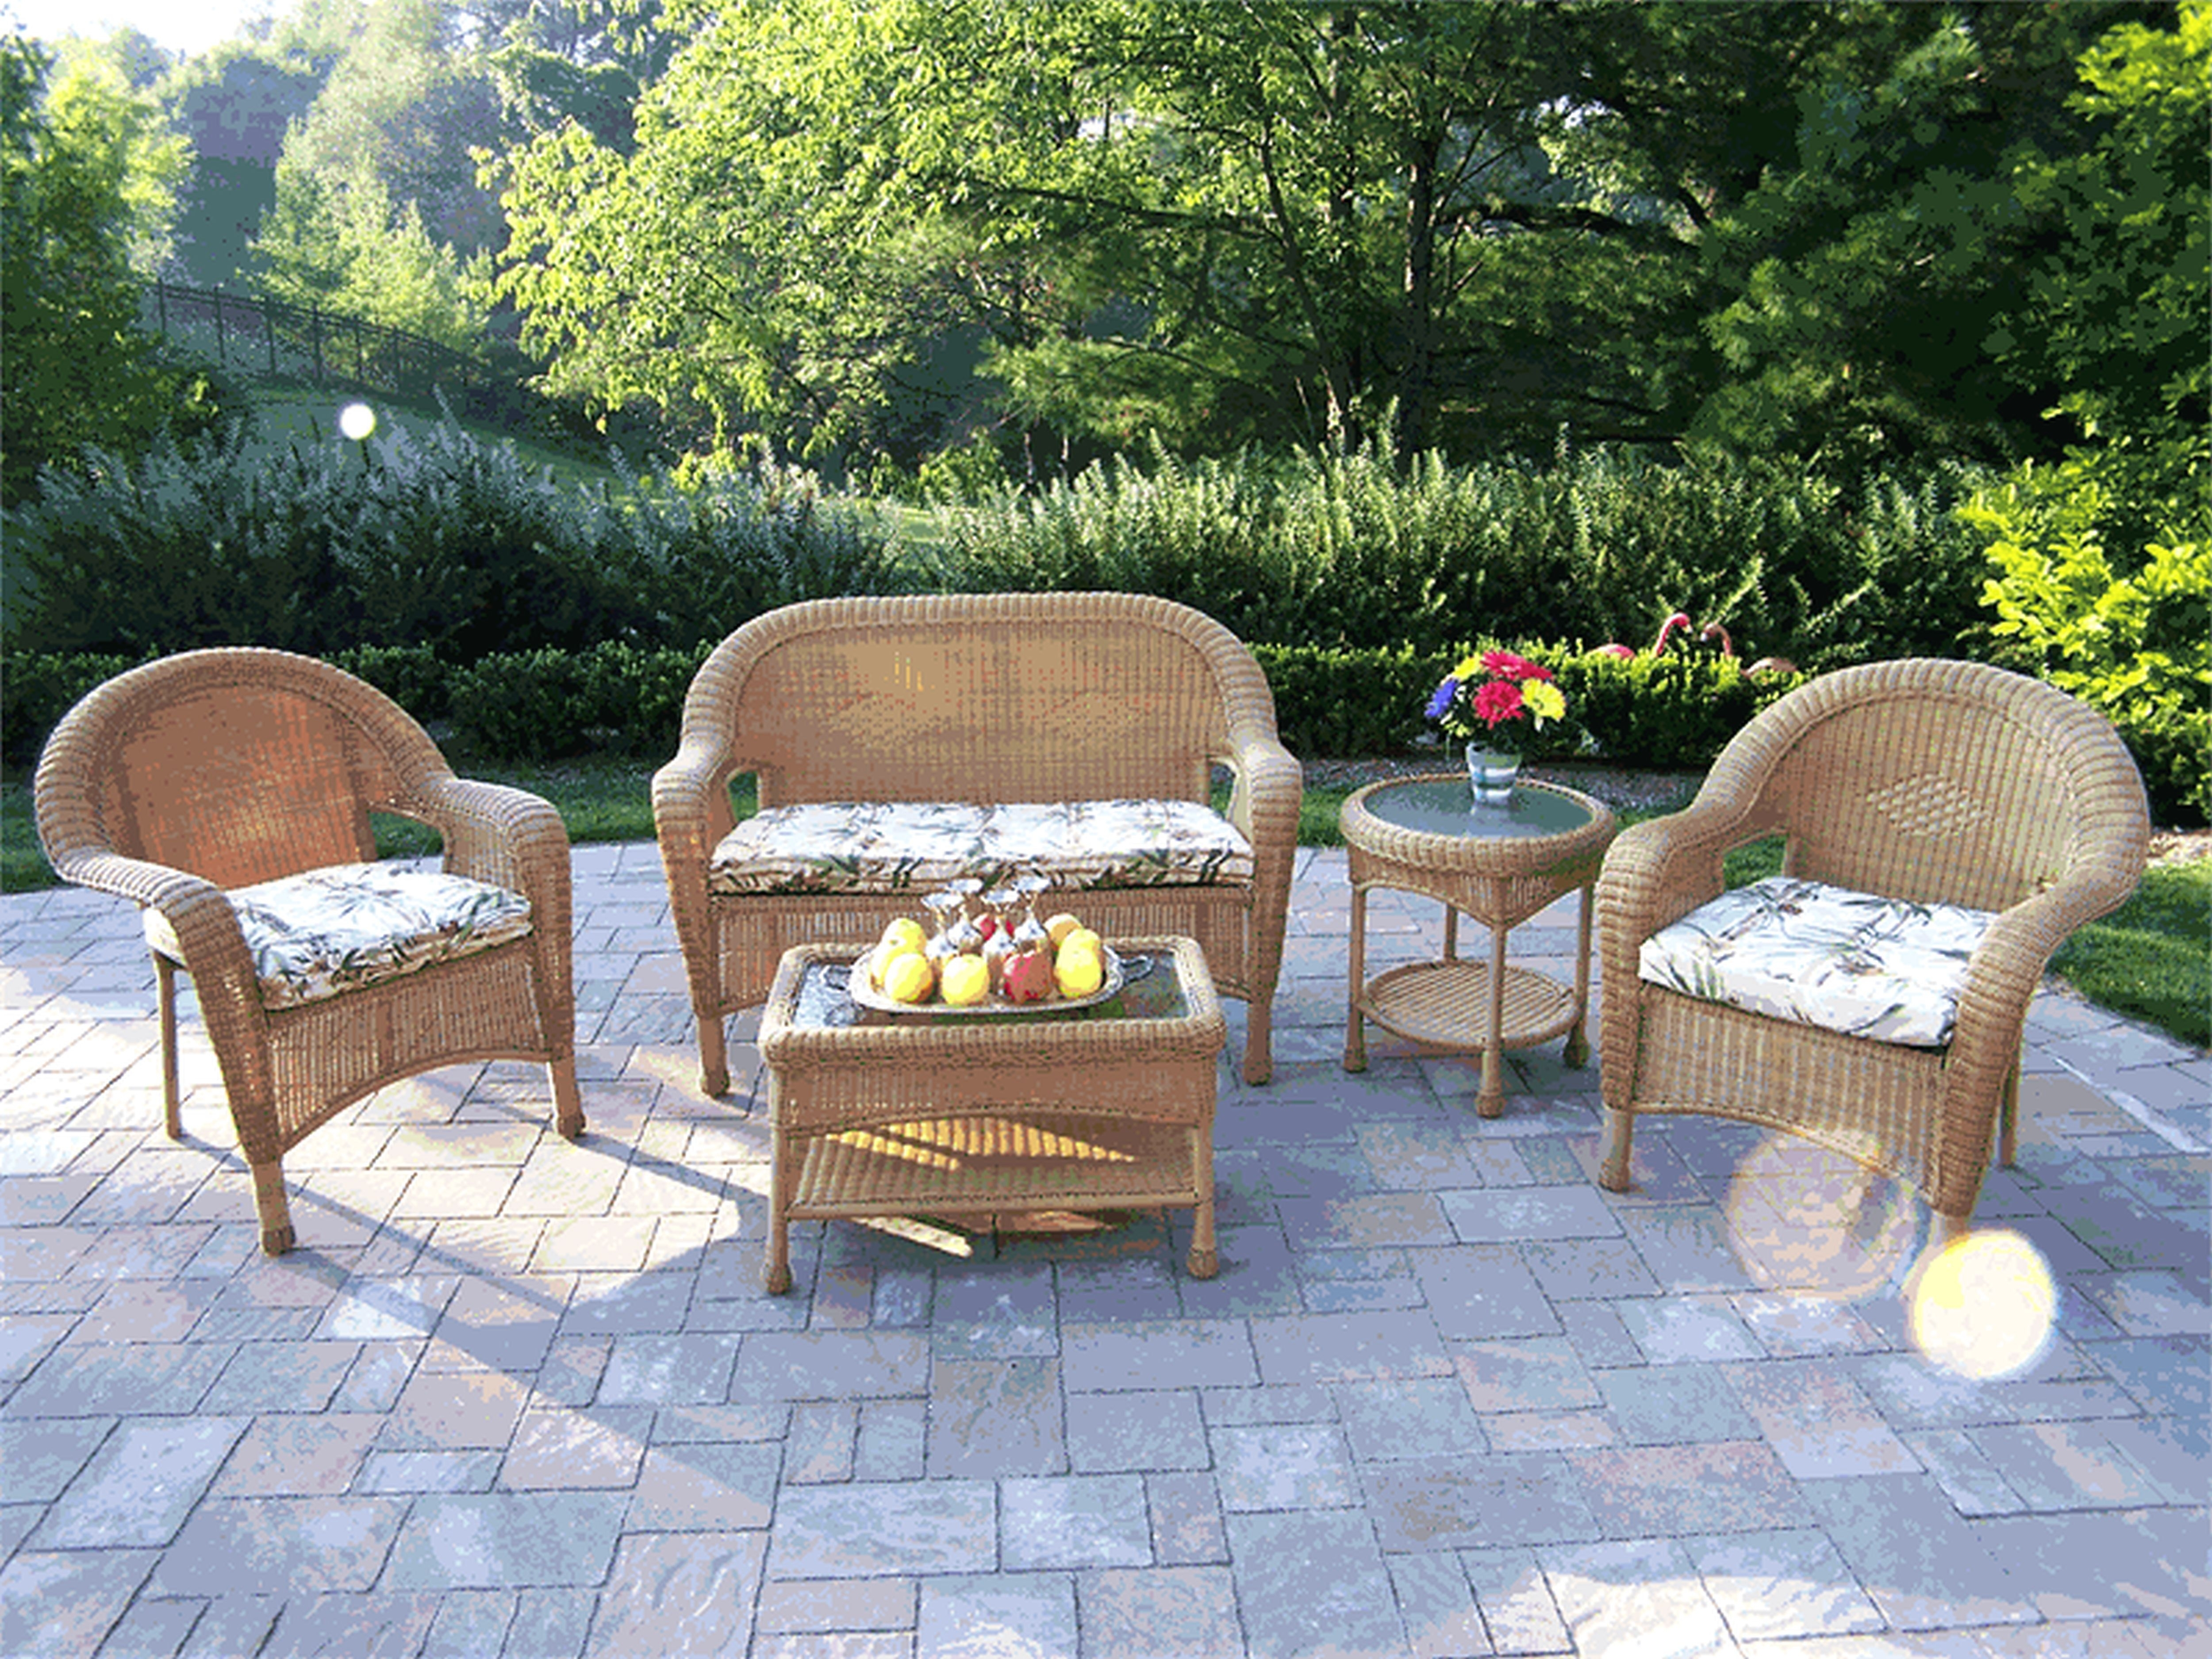 Furniture Interesting Wicker Chair Cushions For Inspiring Outdoor For Outdoor Wicker Furniture Cushions Warmth Outdoor Wicker Furniture Cushions